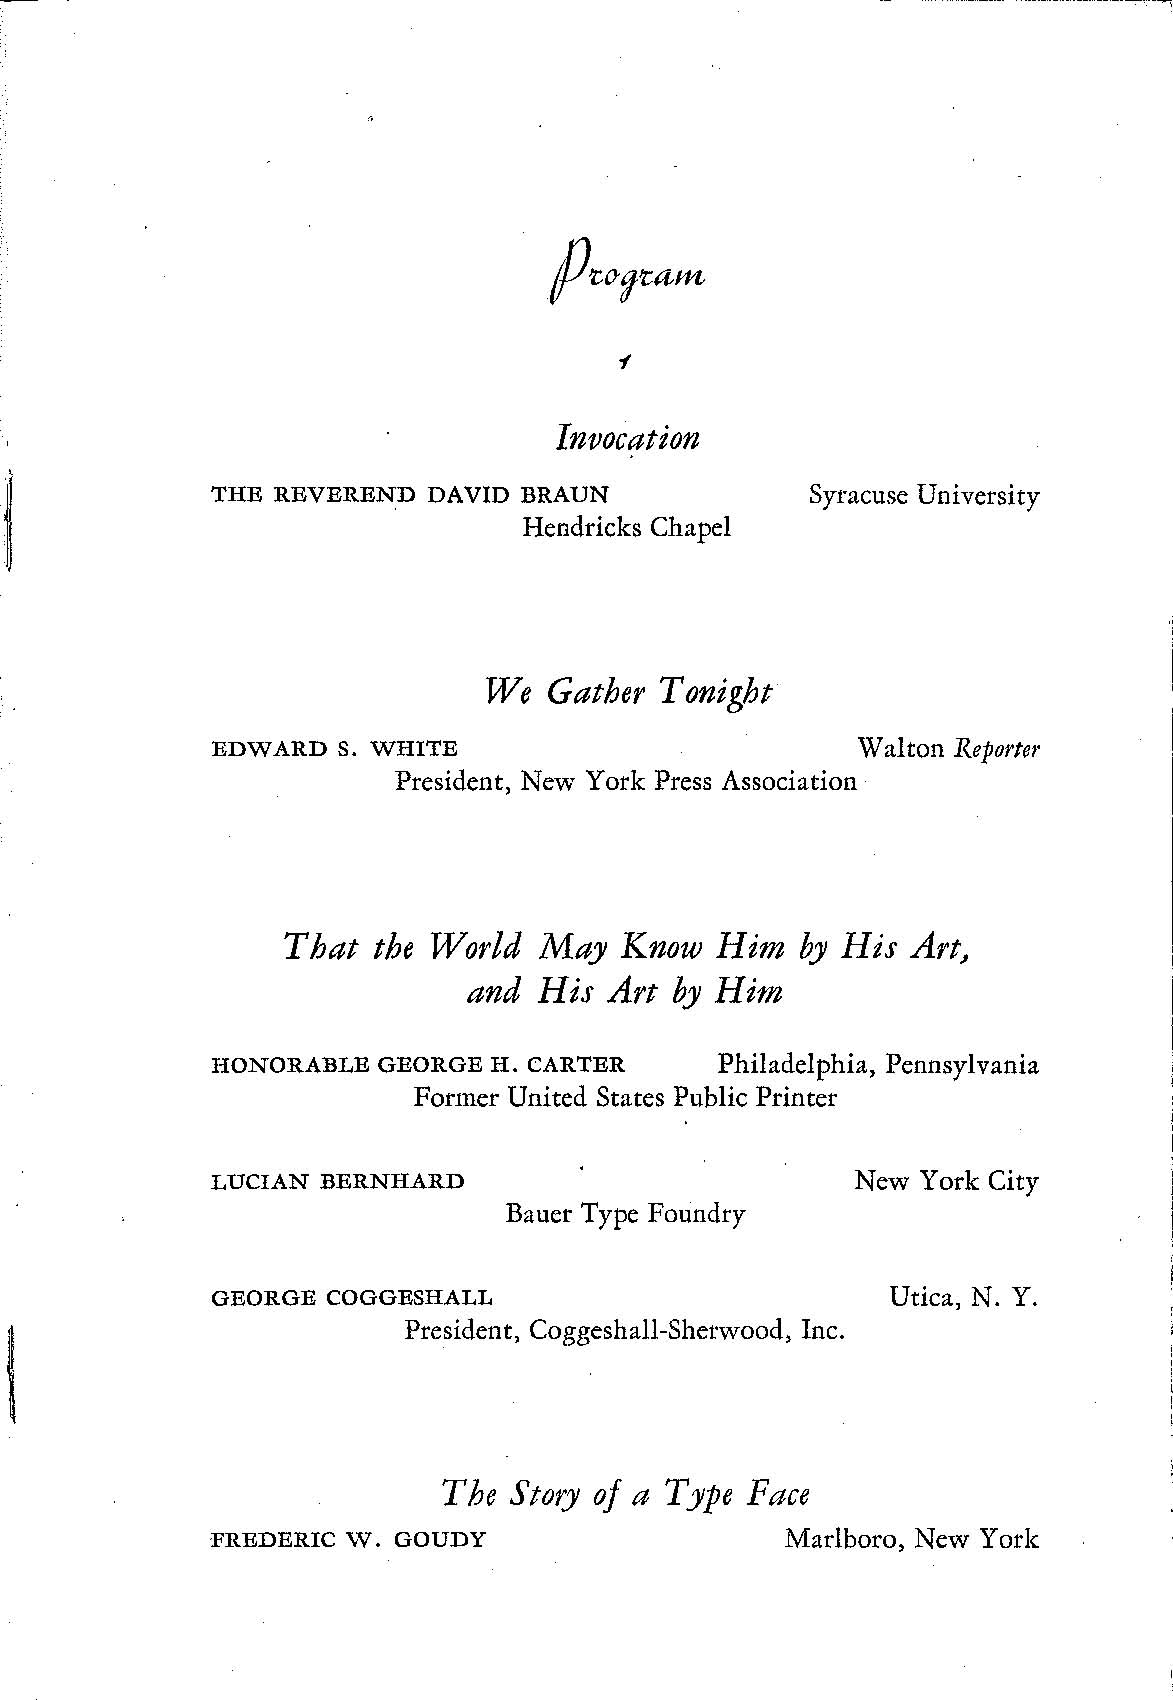 Program for dinner in honor of Frederic W. Goudy, September 1936.